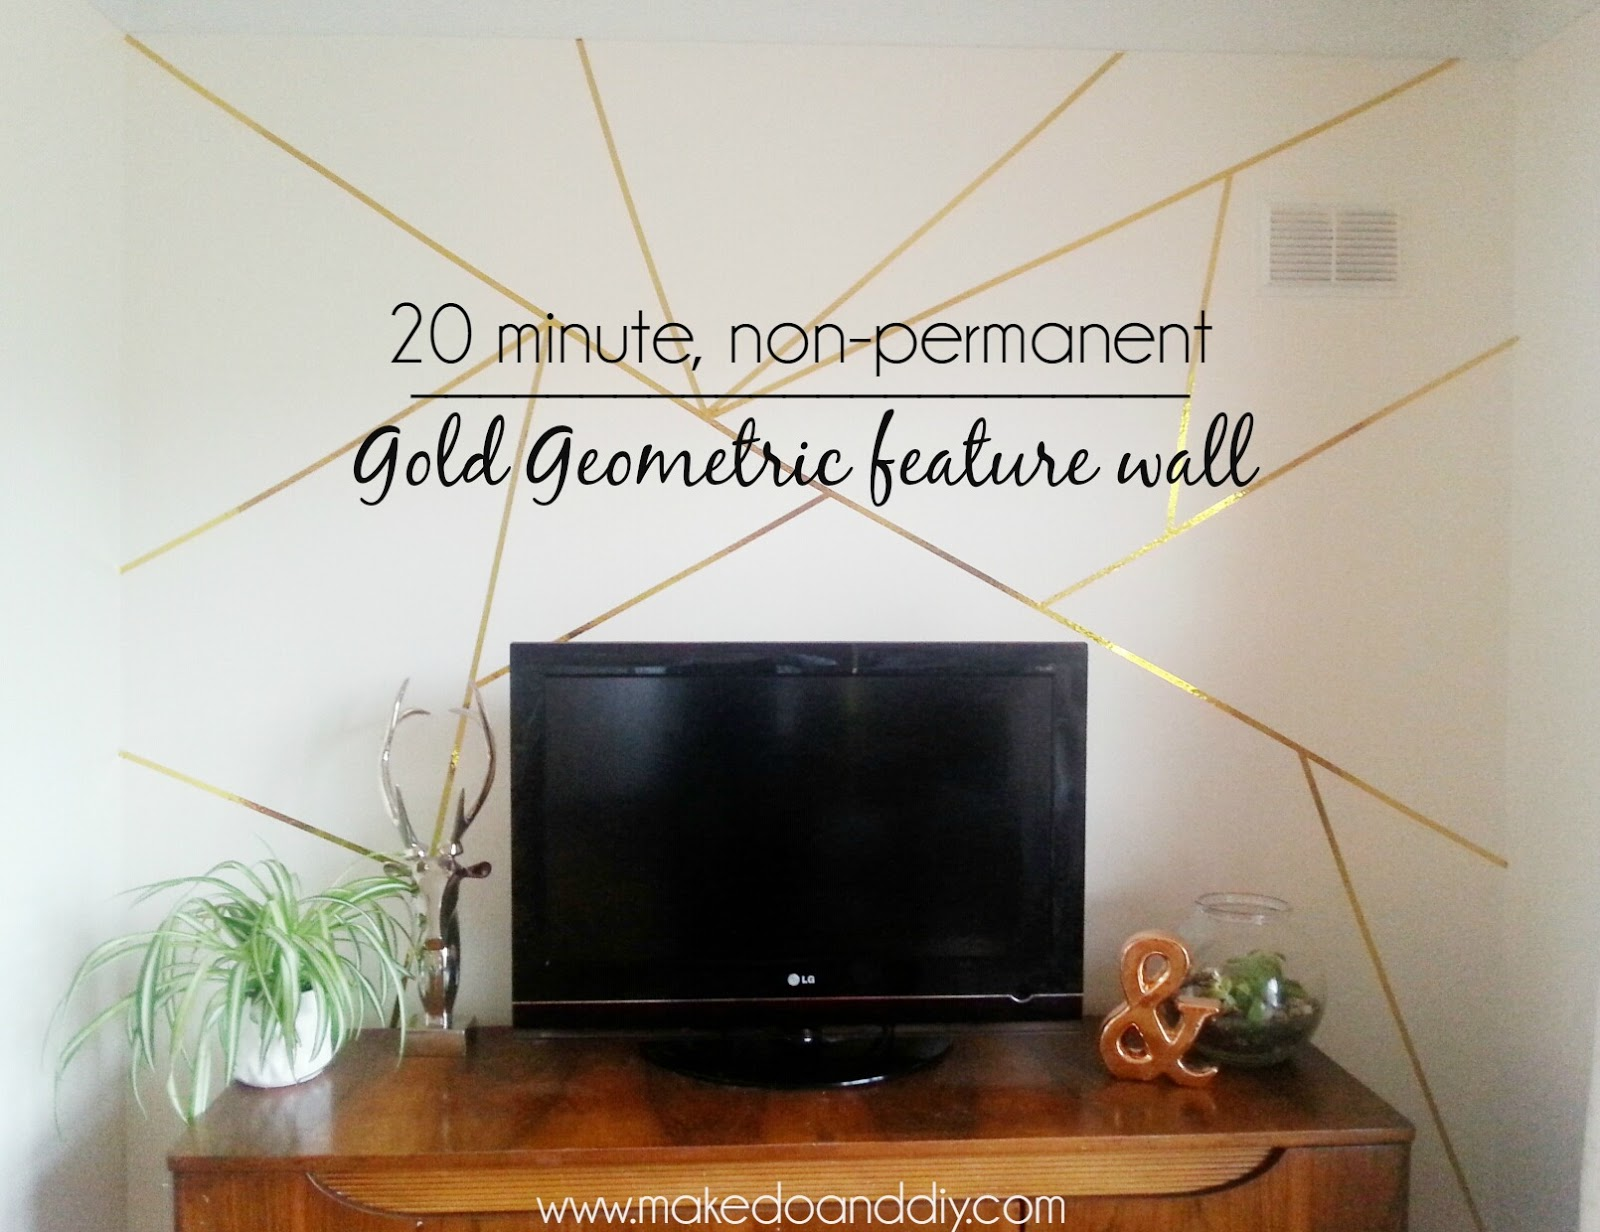 how to create a gold geometric feature wall in 20 minutes ...